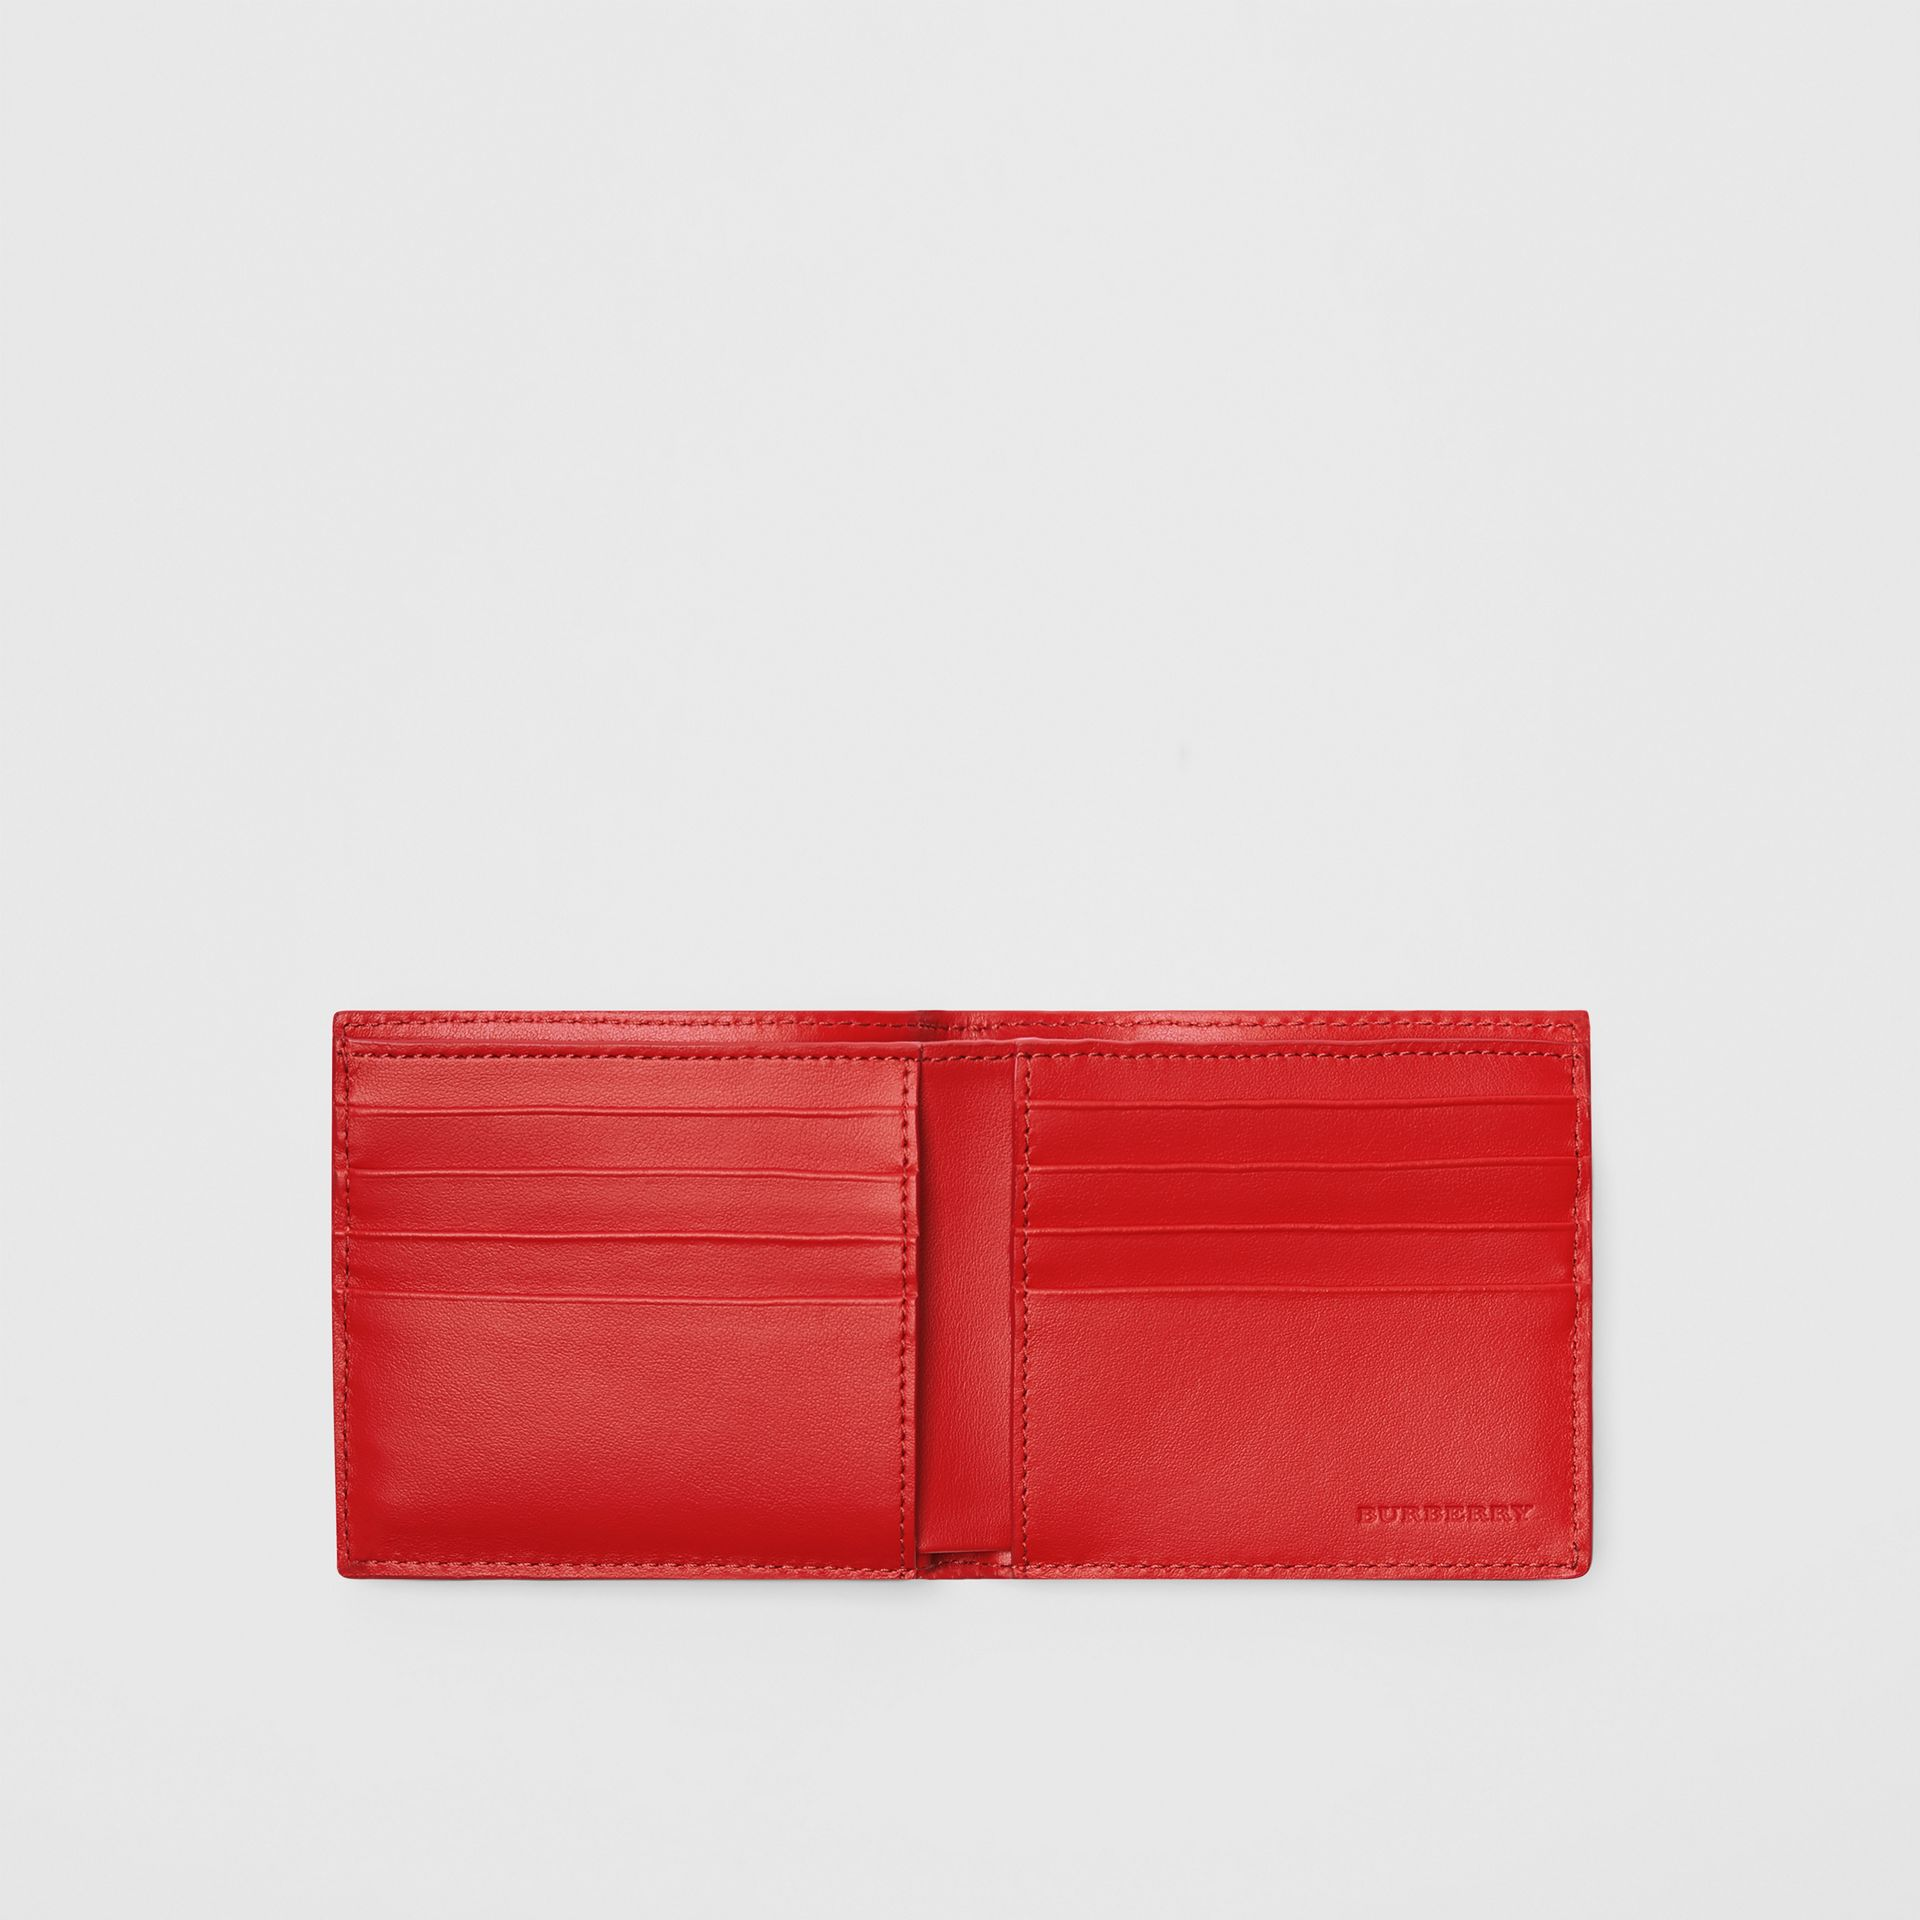 Perforated Check Leather International Bifold Wallet in Rust Red - Men | Burberry Singapore - gallery image 2